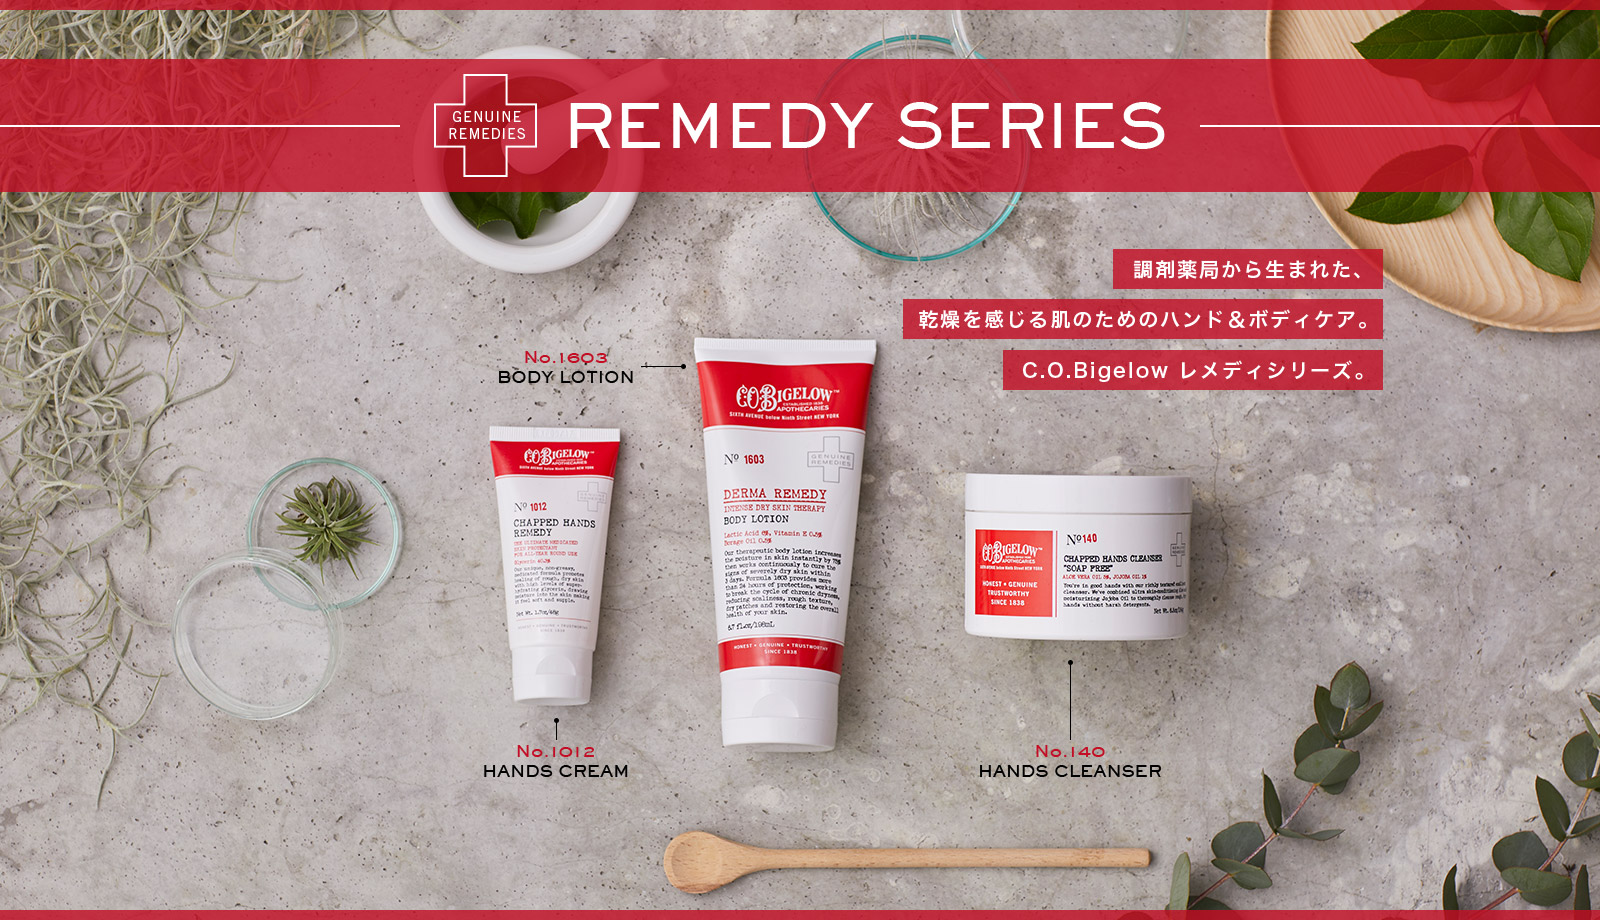 REMEDY SERIES